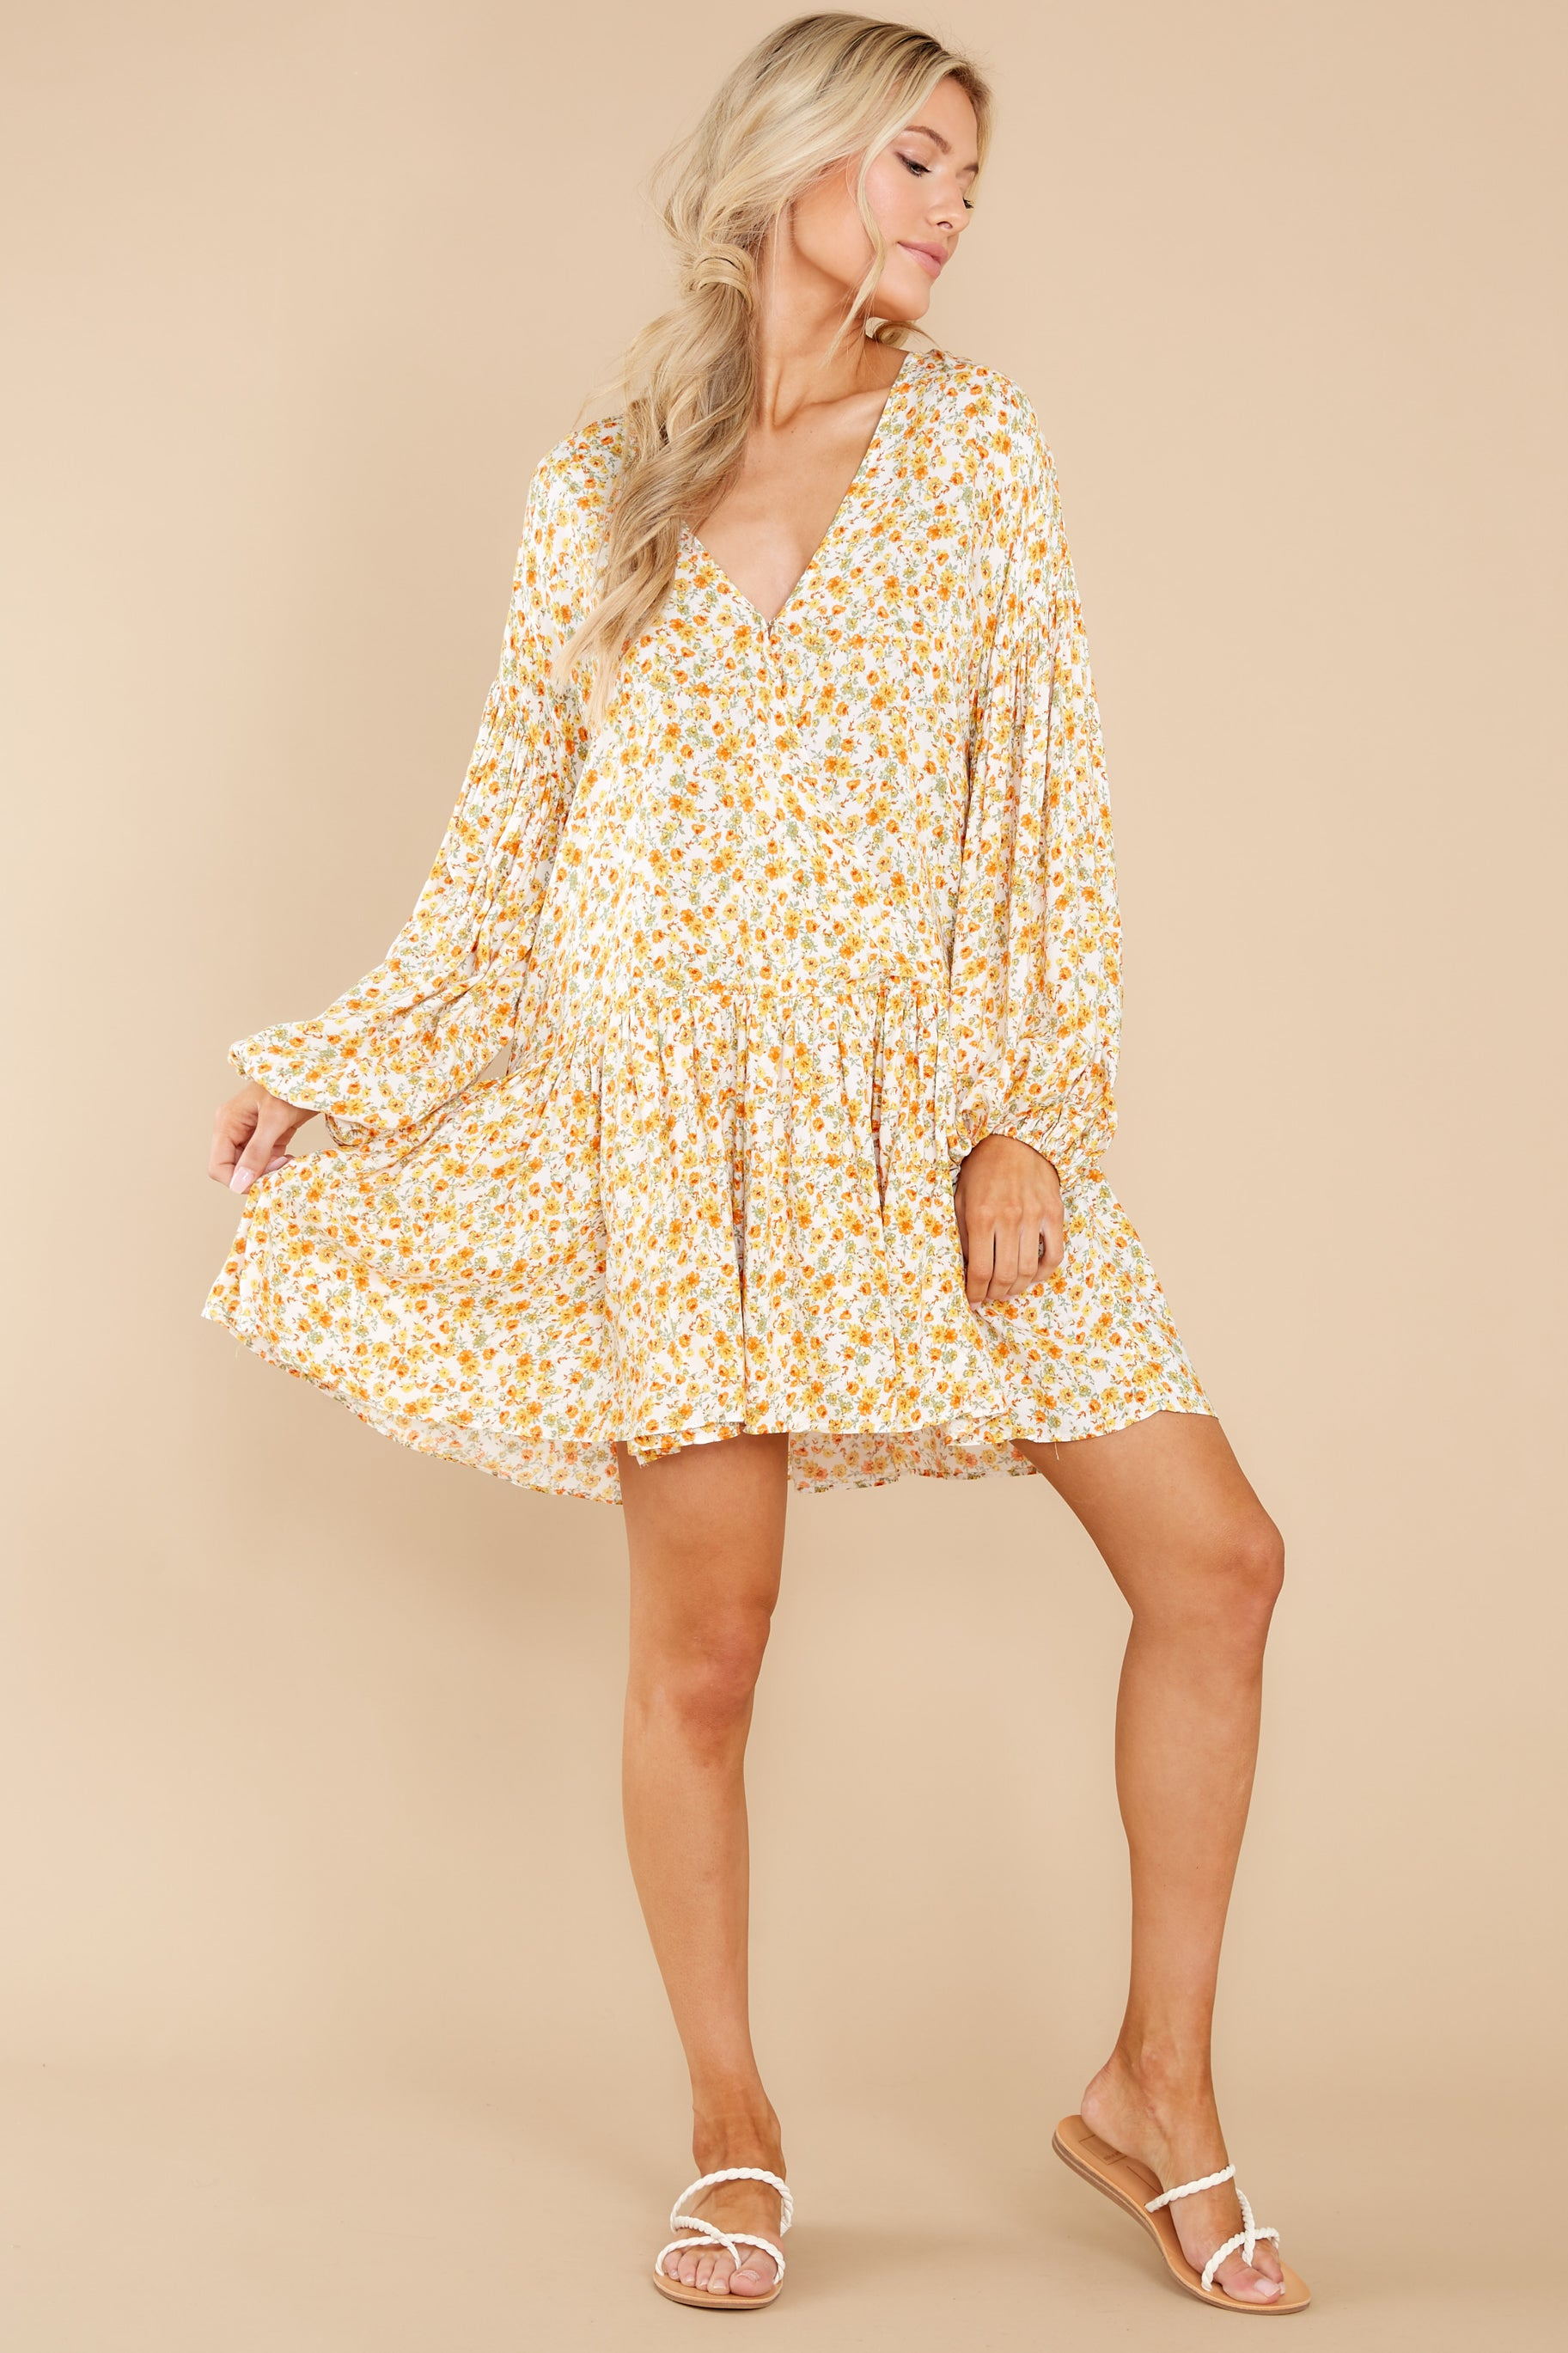 4 Far Away Places Yellow And Orange Floral Print Dress at reddress.com